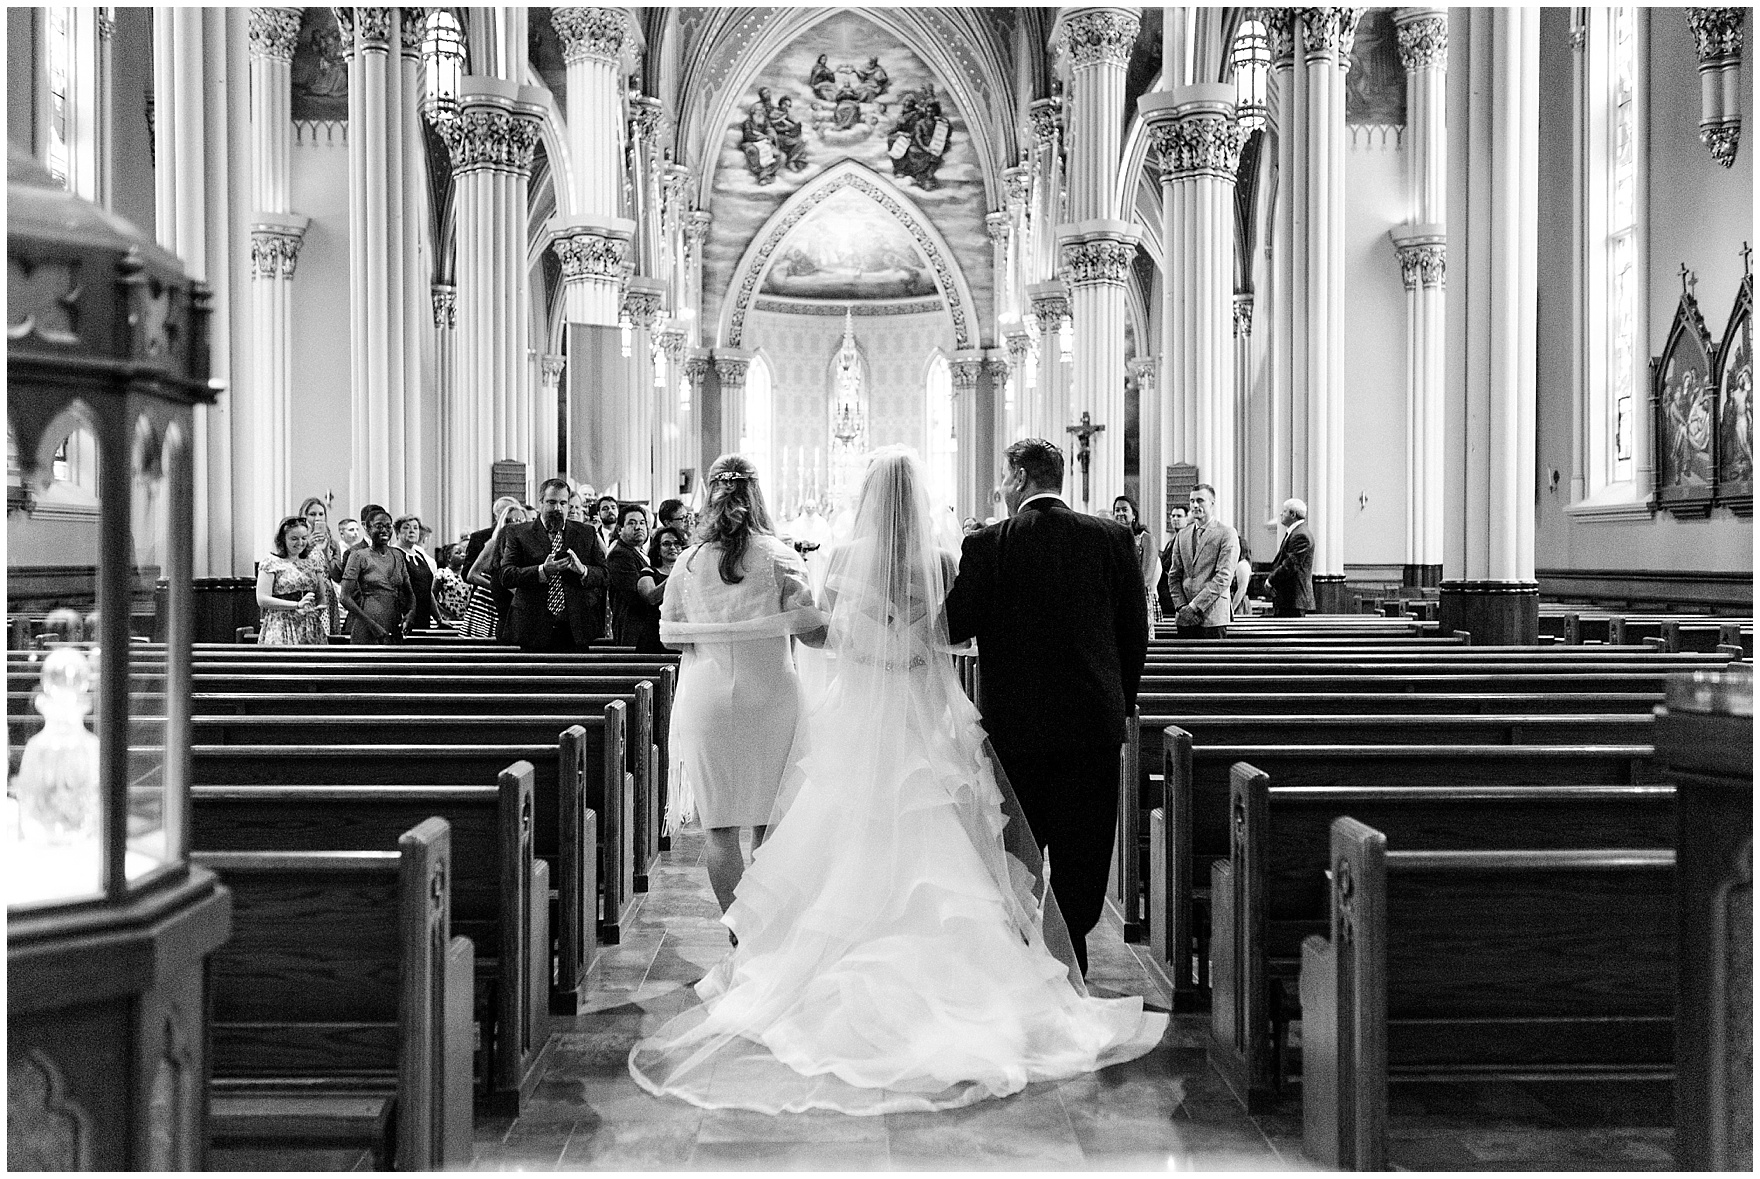 The bride and her parents walk down the aisle of the Basilica of the Sacred Heart during a University of Notre Dame wedding.